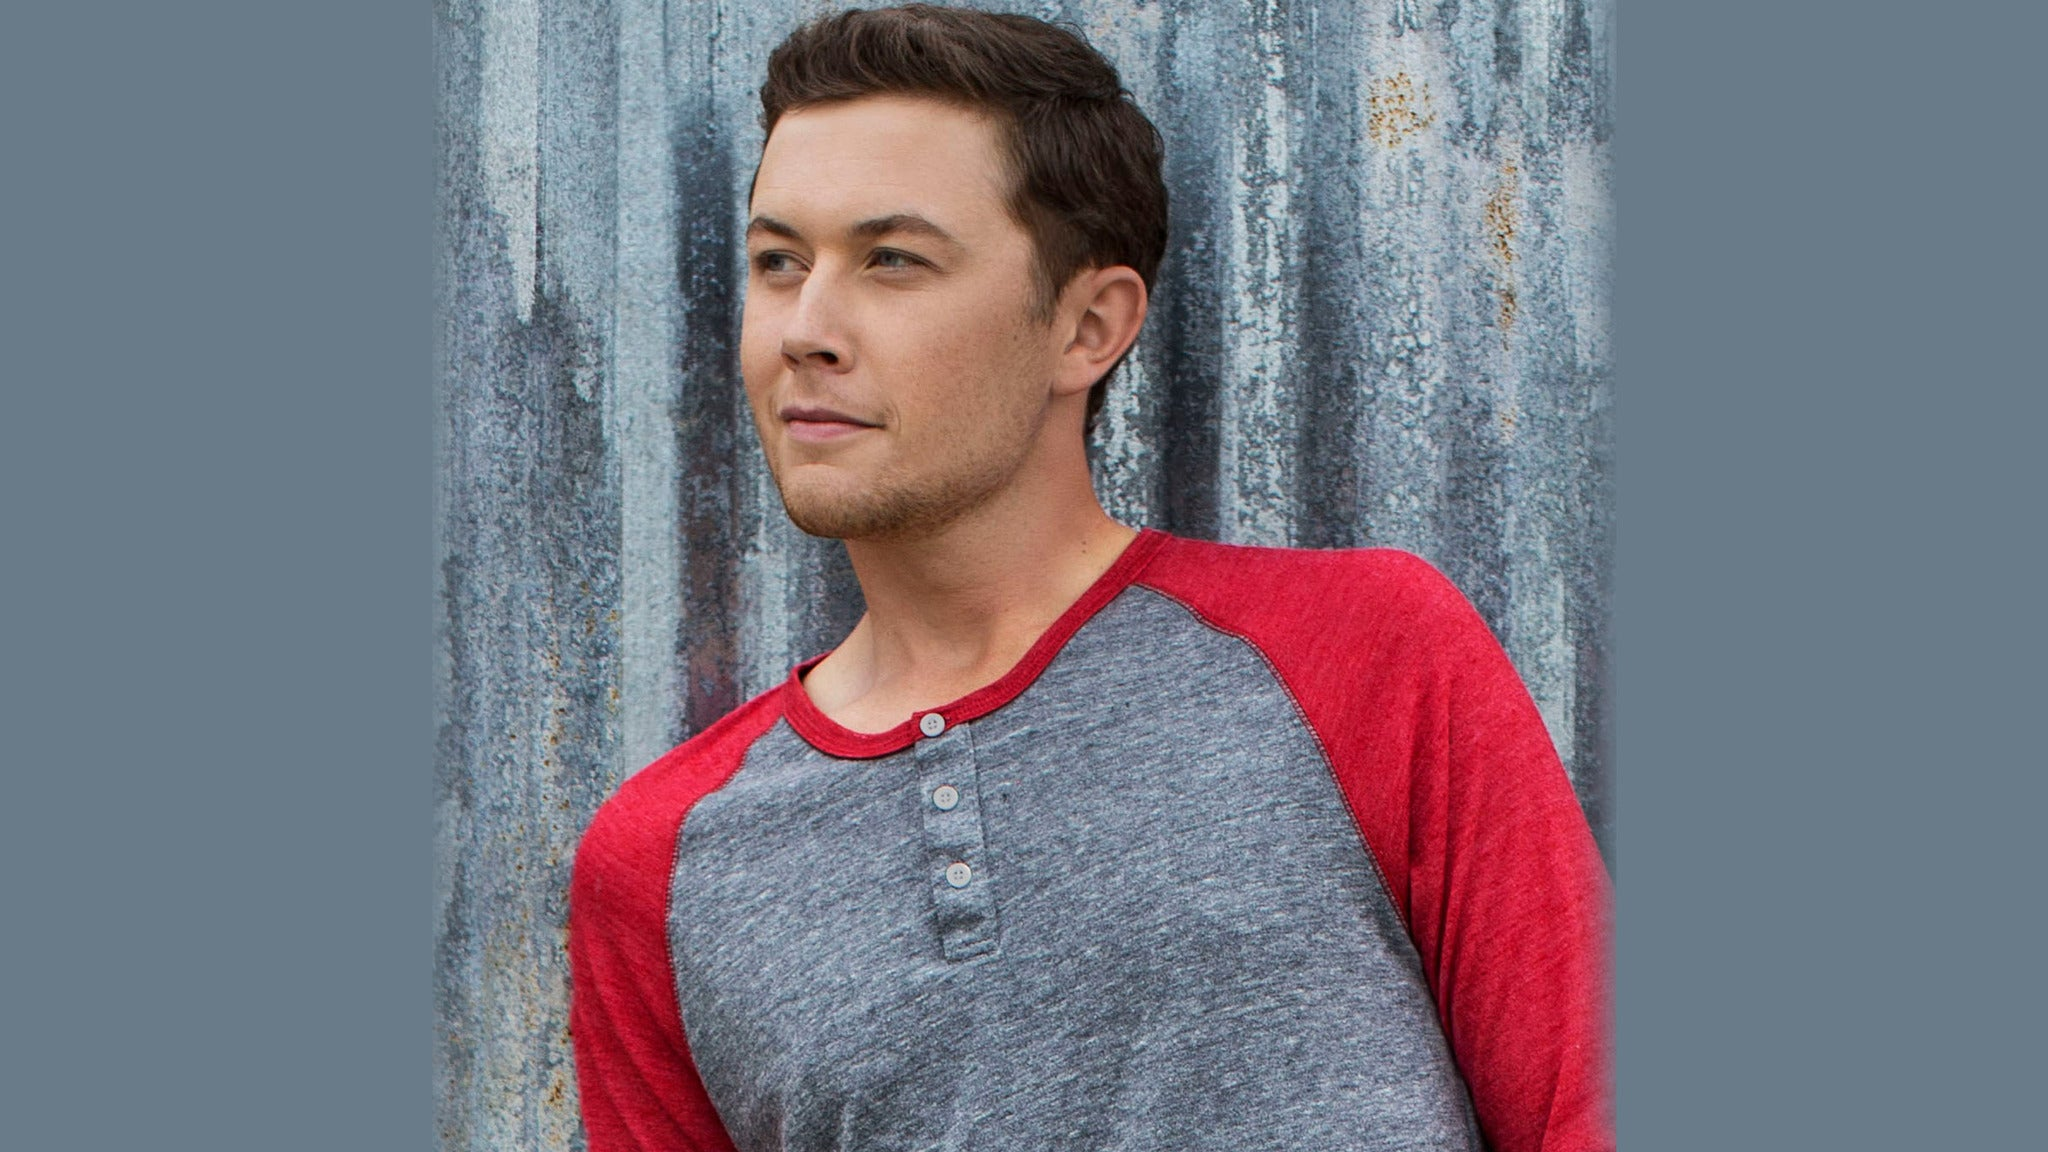 Scotty McCreery at United Wireless Arena